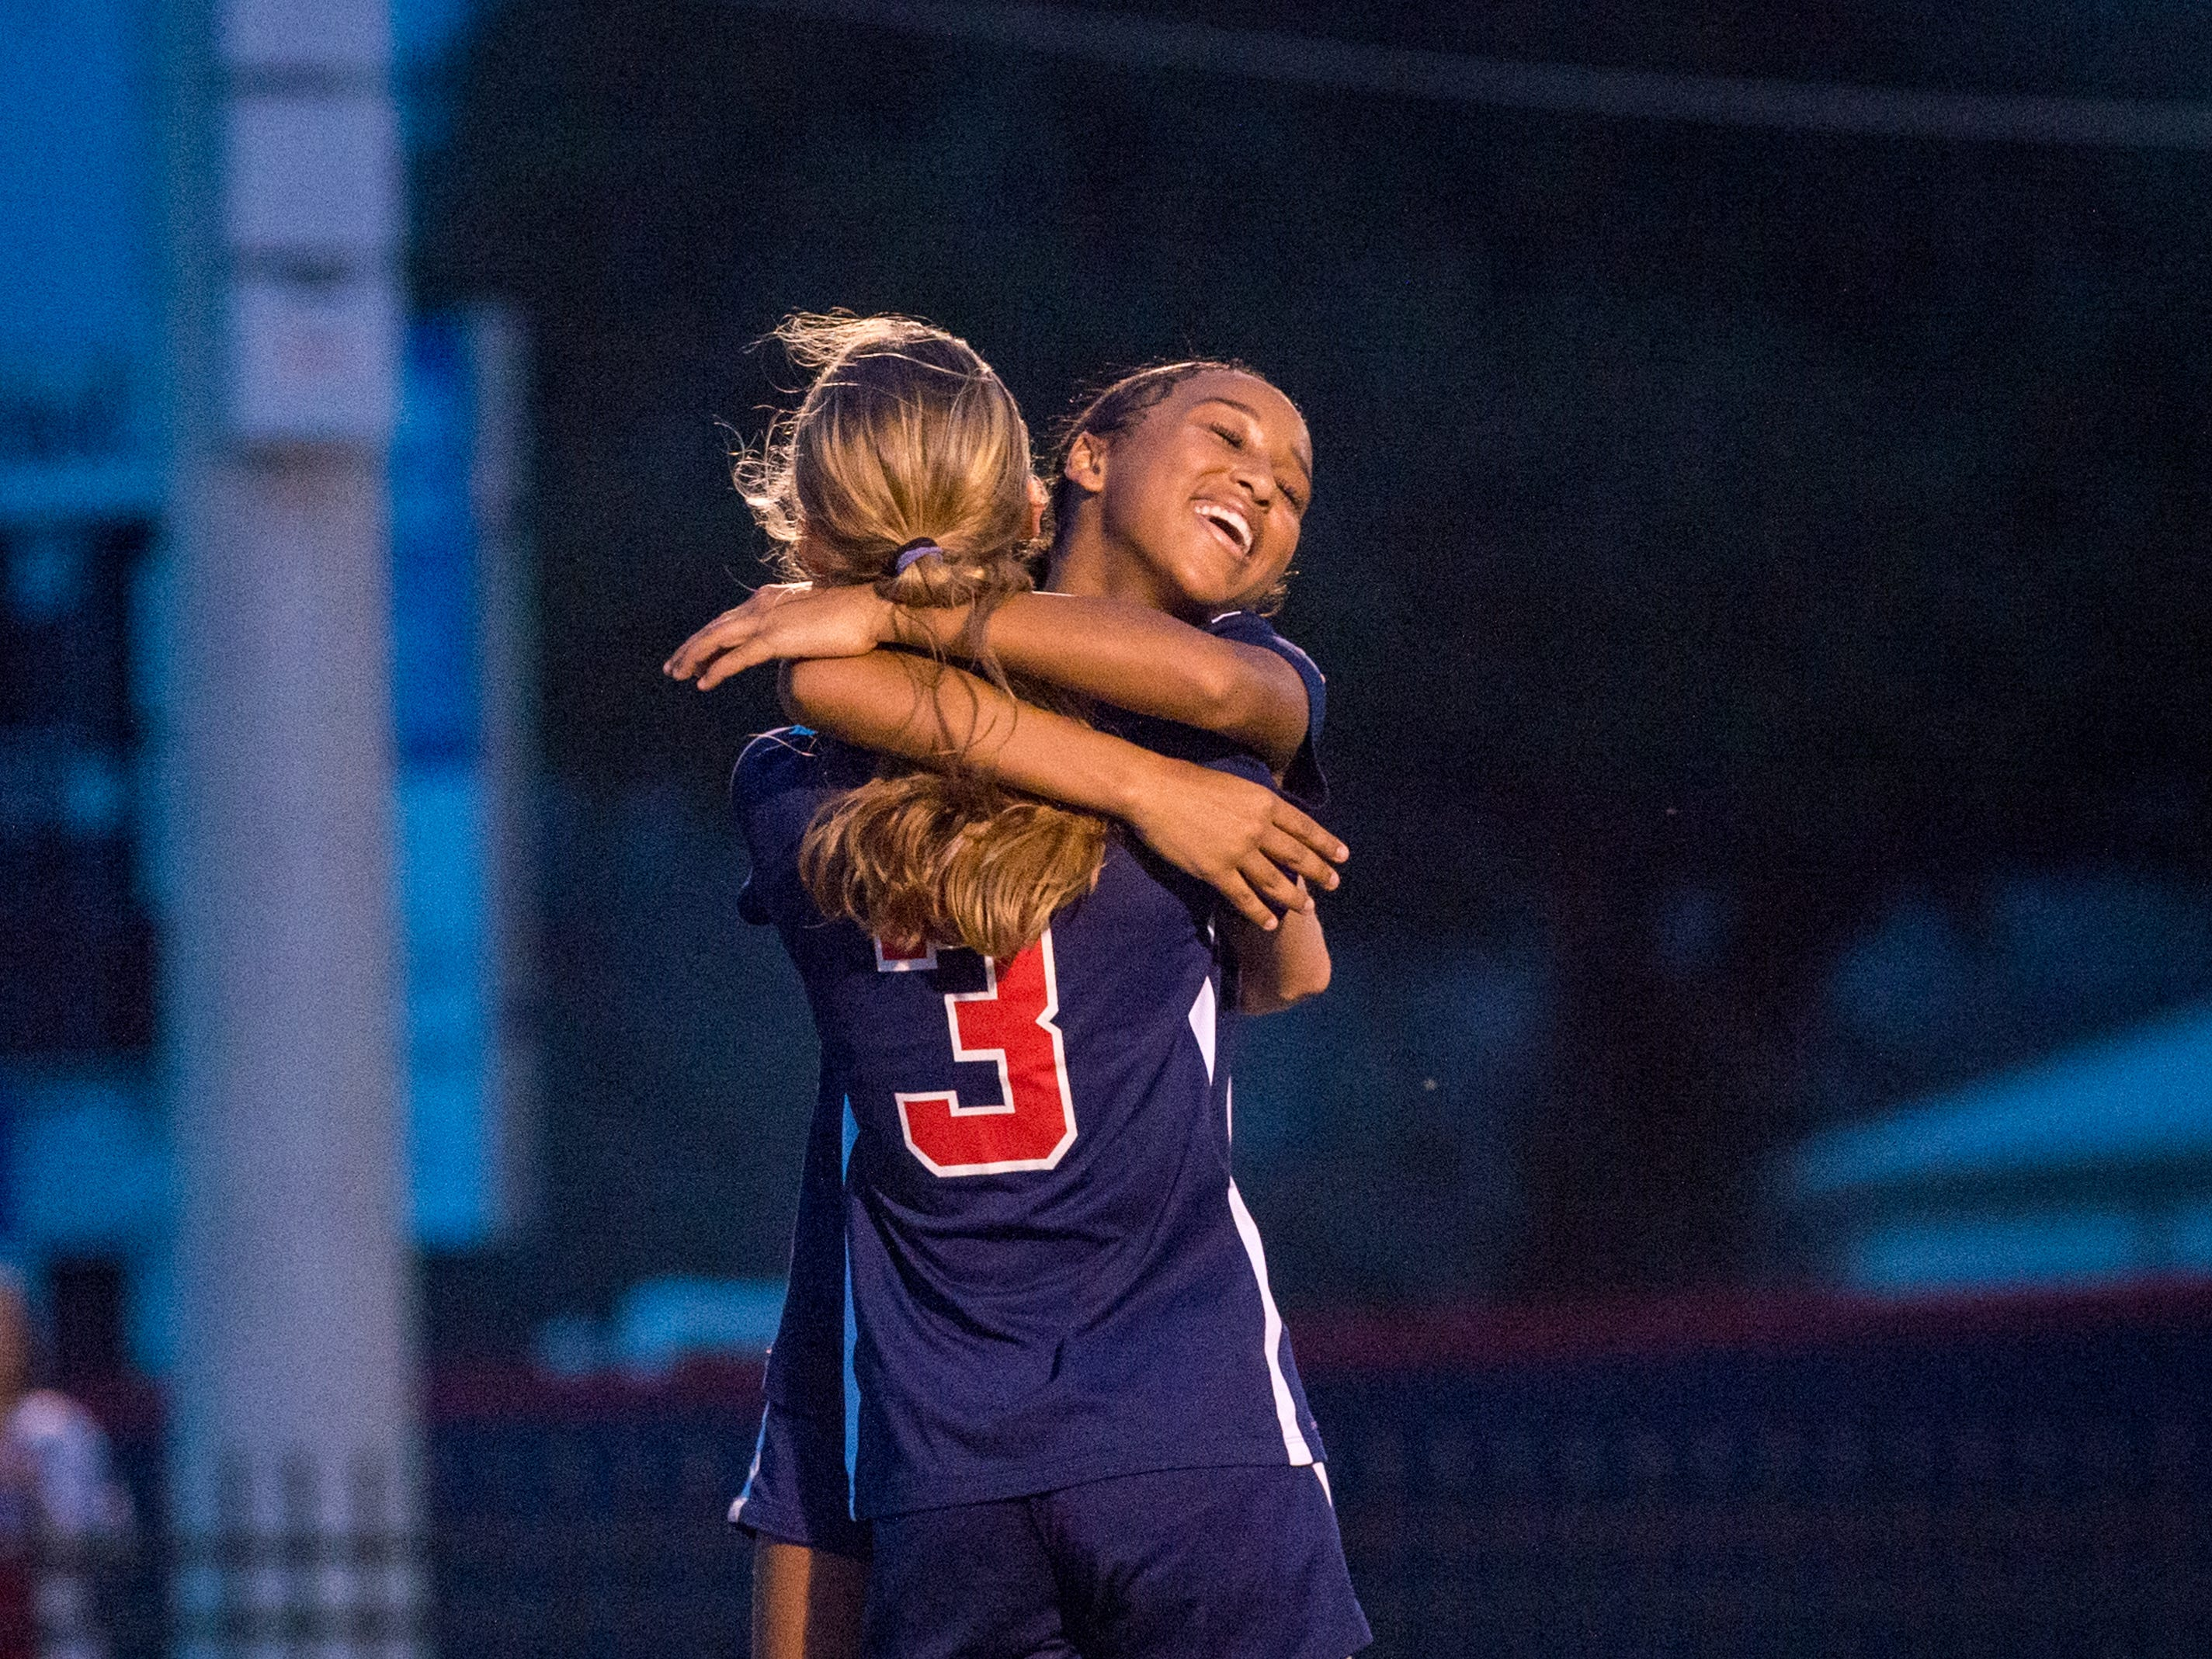 Camryn Chretien celebrates with Emily Sonnier as Teurlings Catholic girls soccer takes down Holy Savior Menard in the quarterfinals of the LHSAA soccer playoffs. Monday, Feb. 11, 2019.